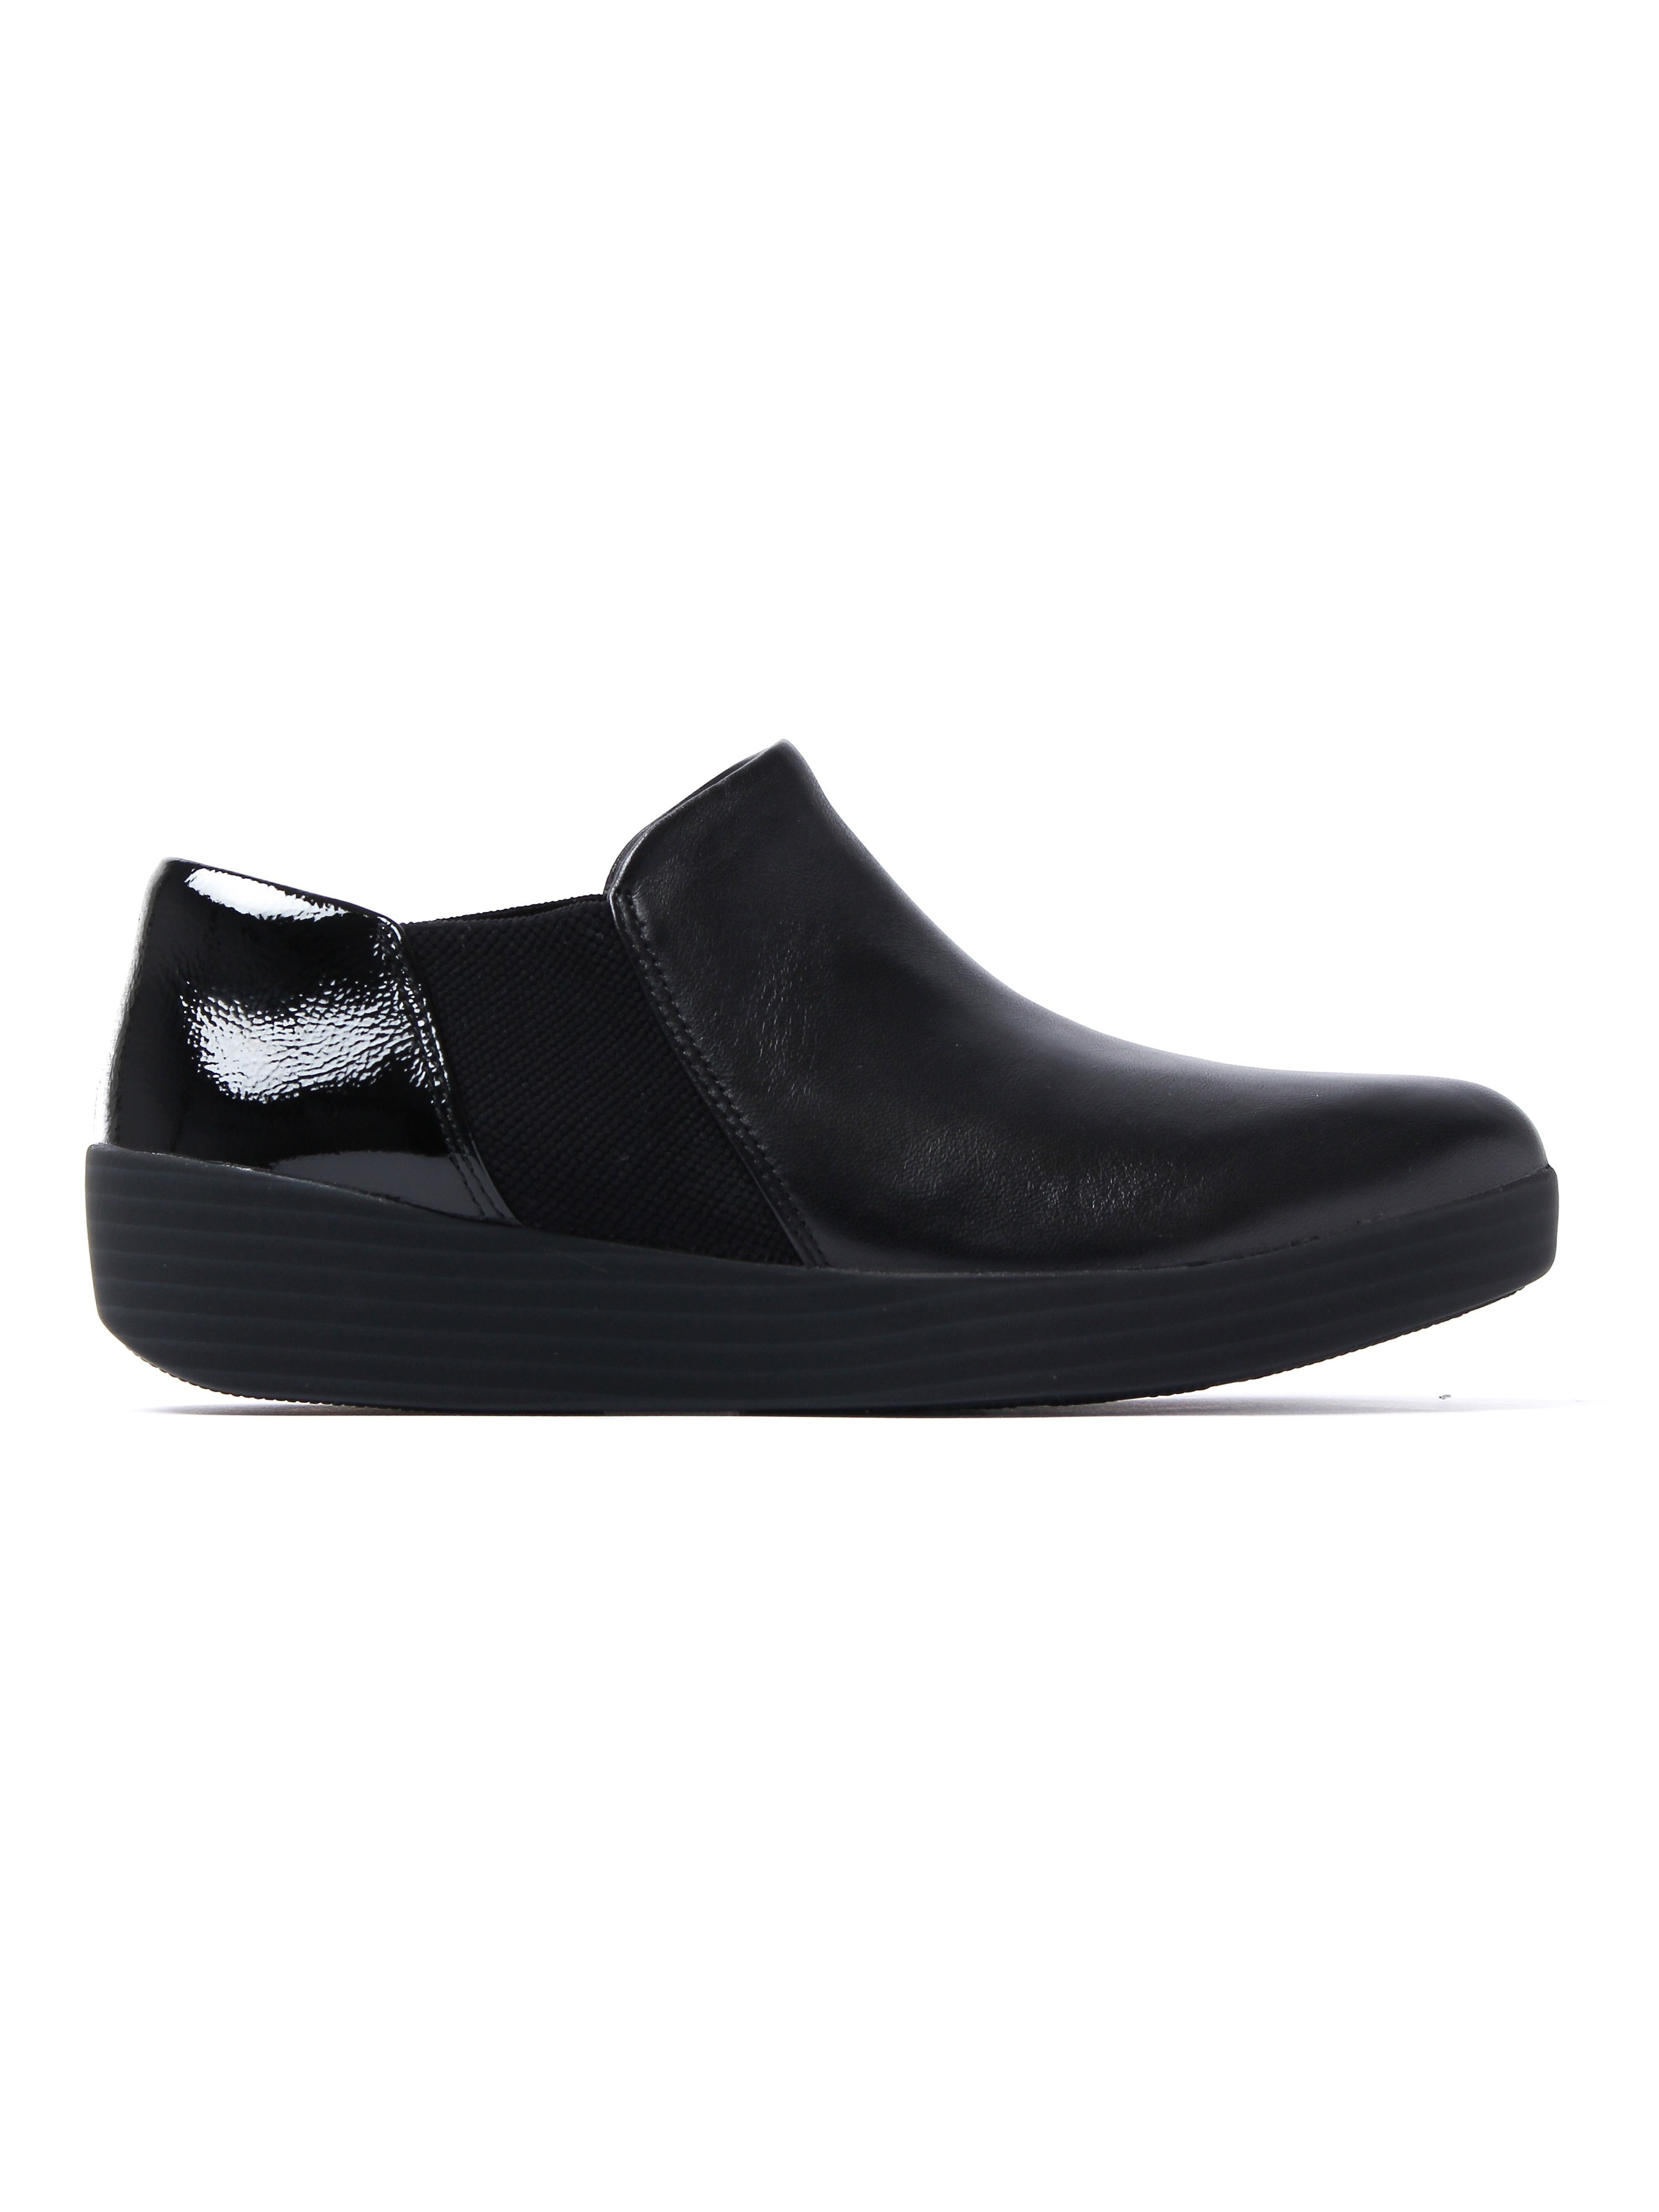 FitFlop Women's Superchelsea Slip On Shoes - Black Leather Patent